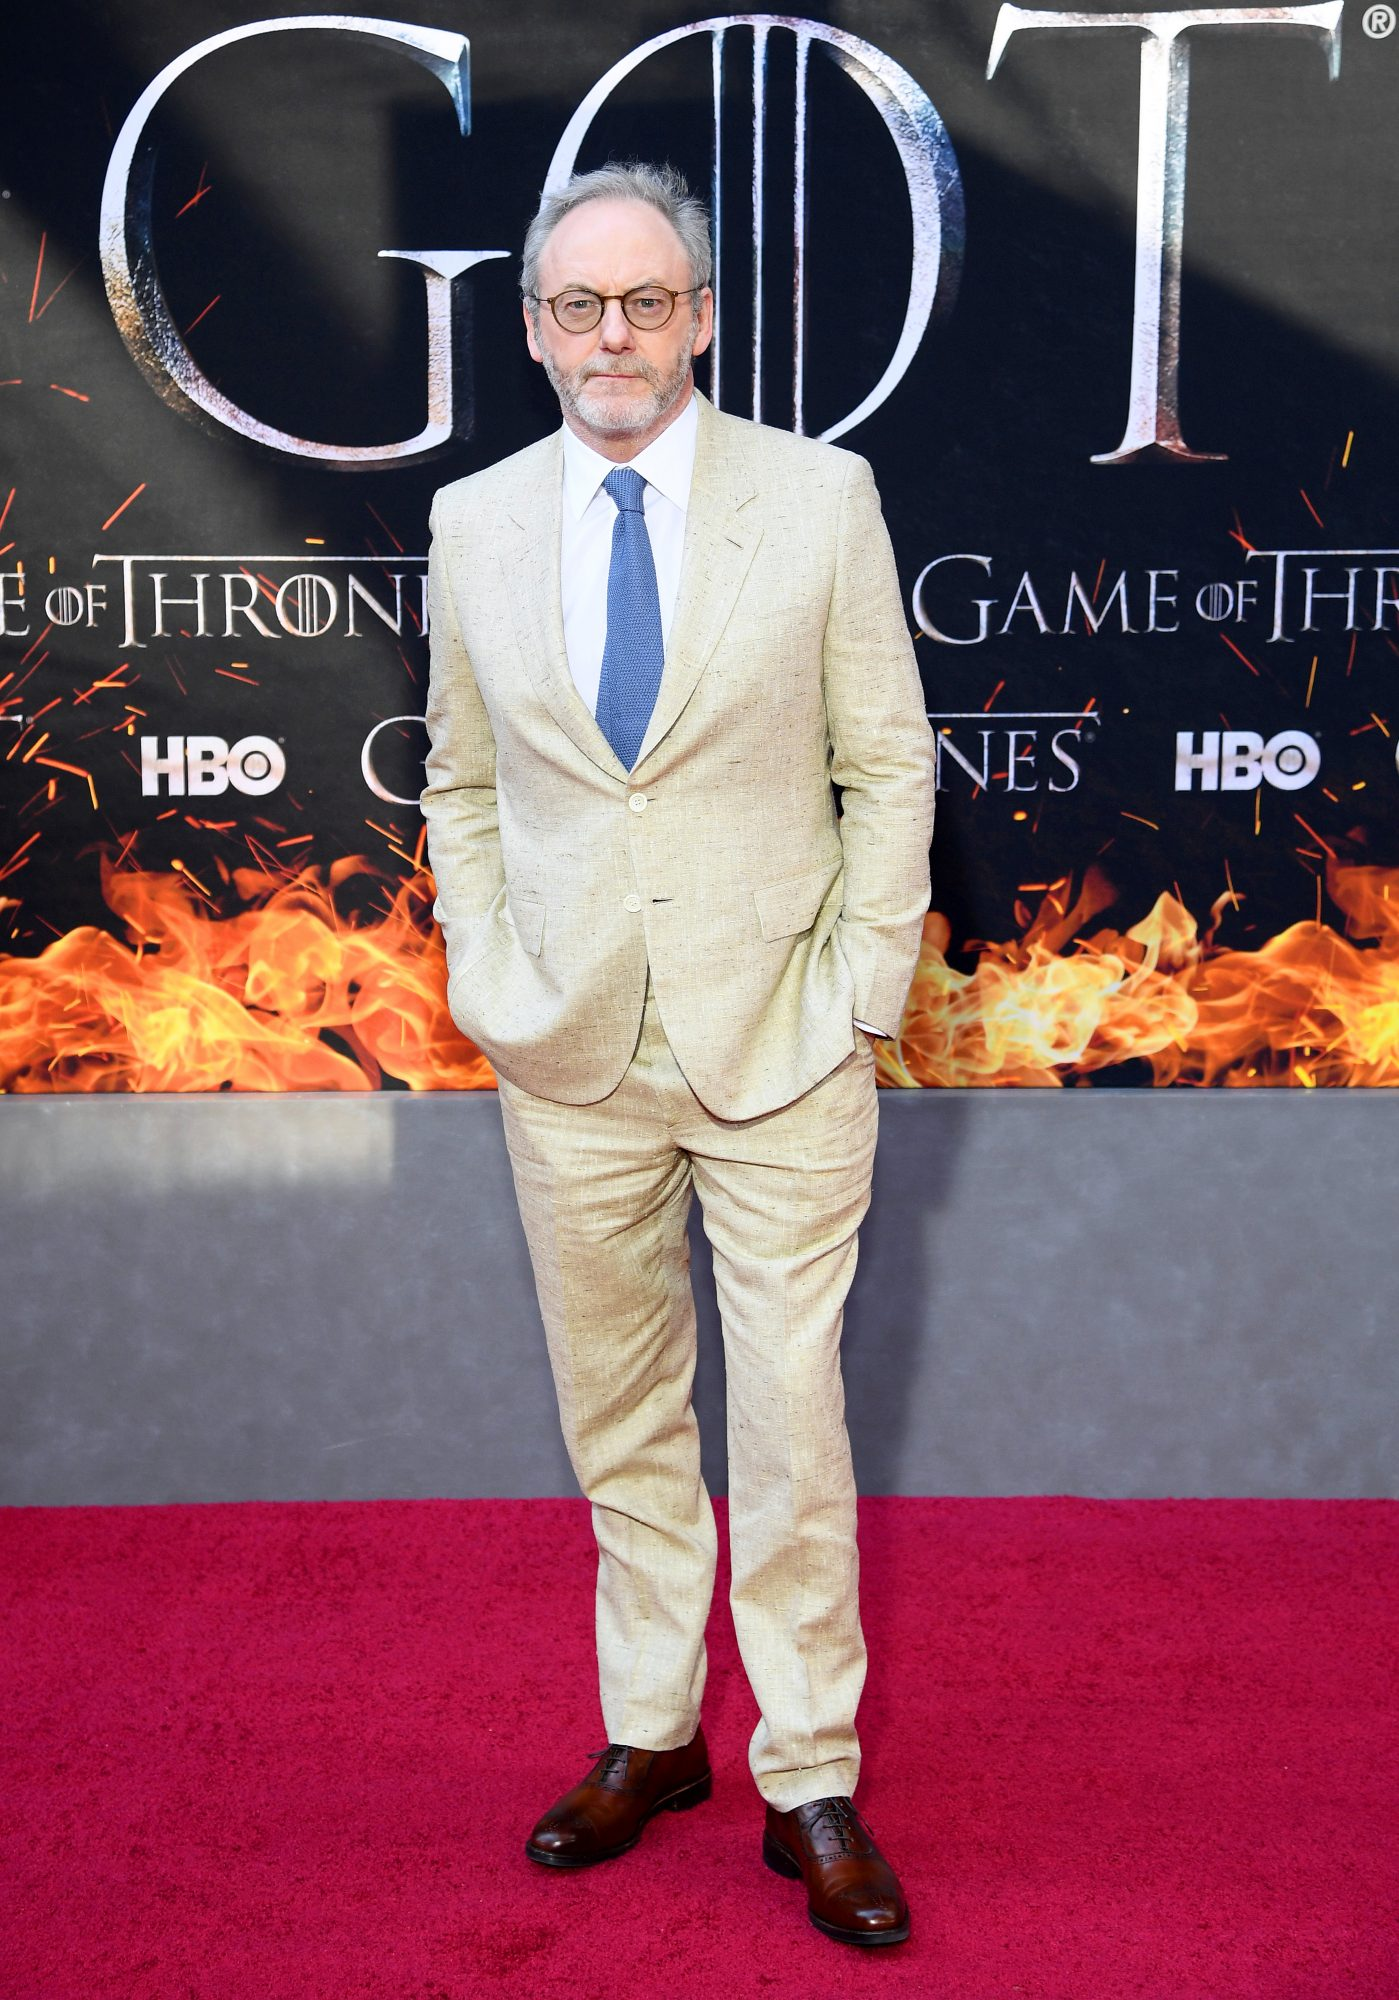 """NEW YORK, NEW YORK - APRIL 03: Liam Cunningham attends the """"Game Of Thrones"""" Season 8 Premiere on April 03, 2019 in New York City. (Photo by Dimitrios Kambouris/Getty Images)"""